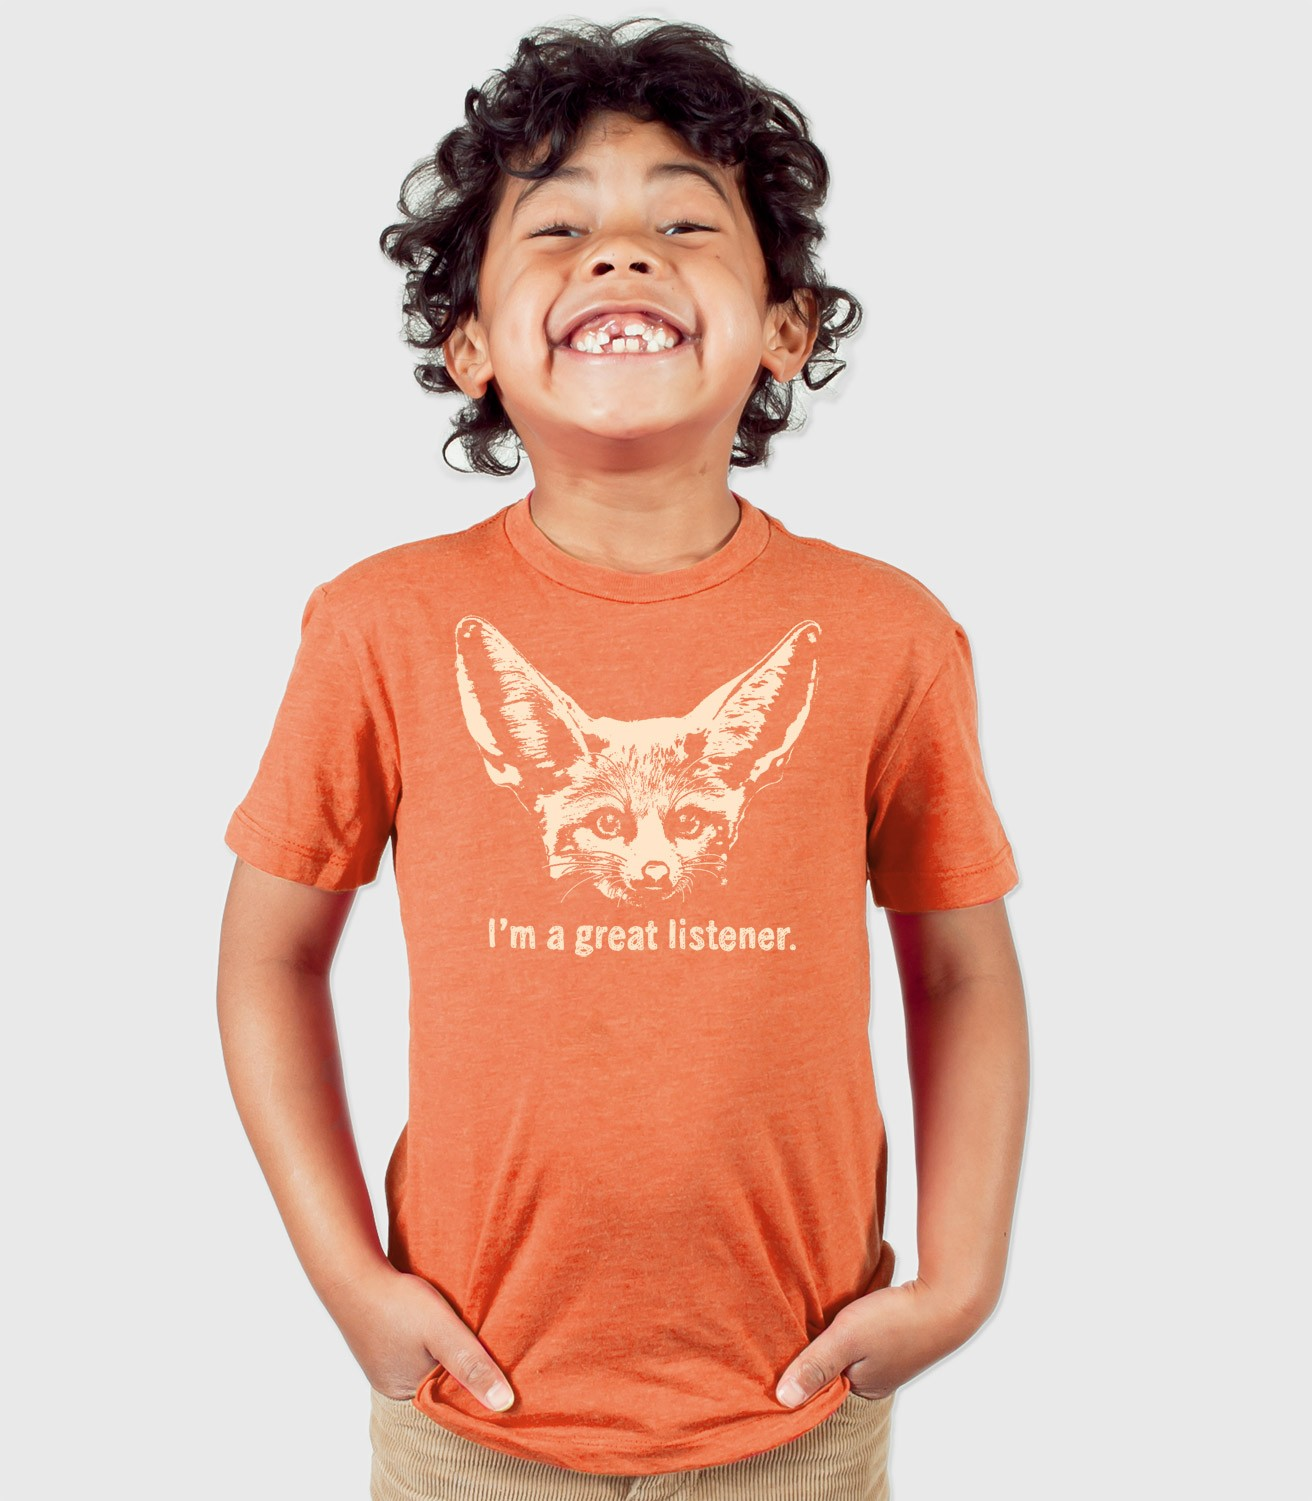 A Cocky Tiger Cotton T-Shirt for Children